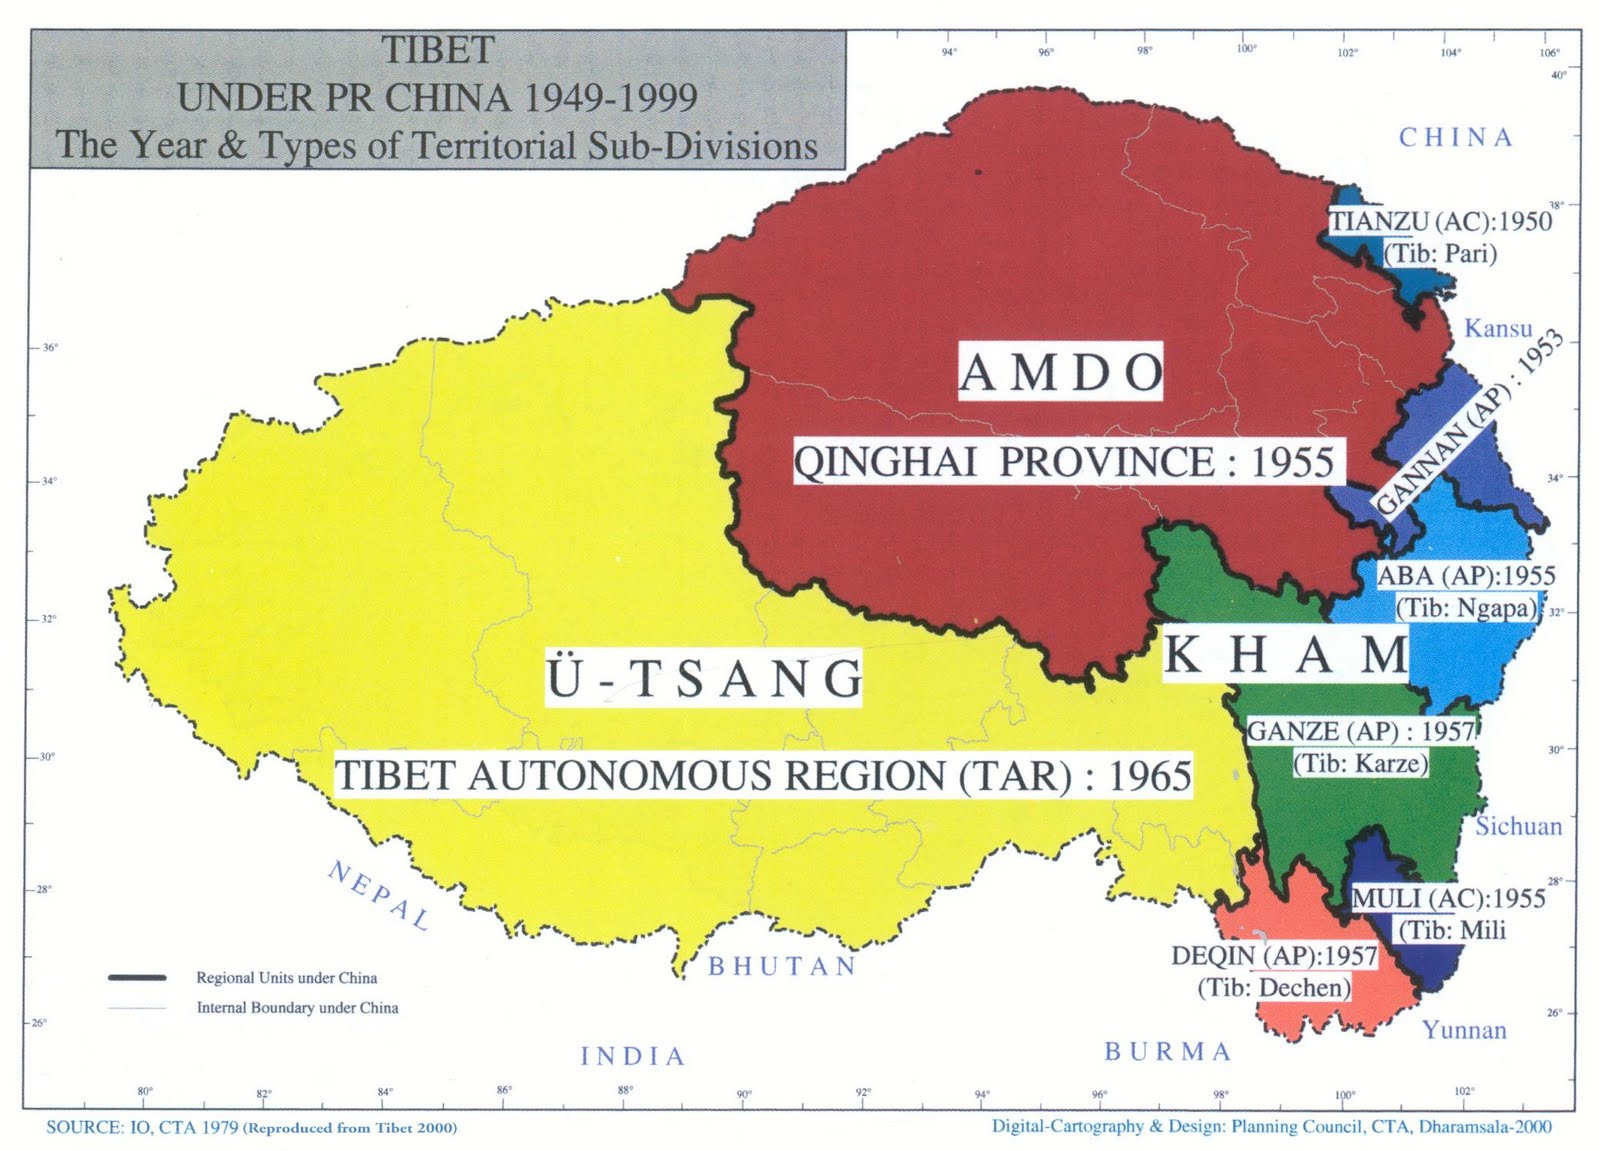 China Without The Separatist Regions Of Tibet Xinjiang